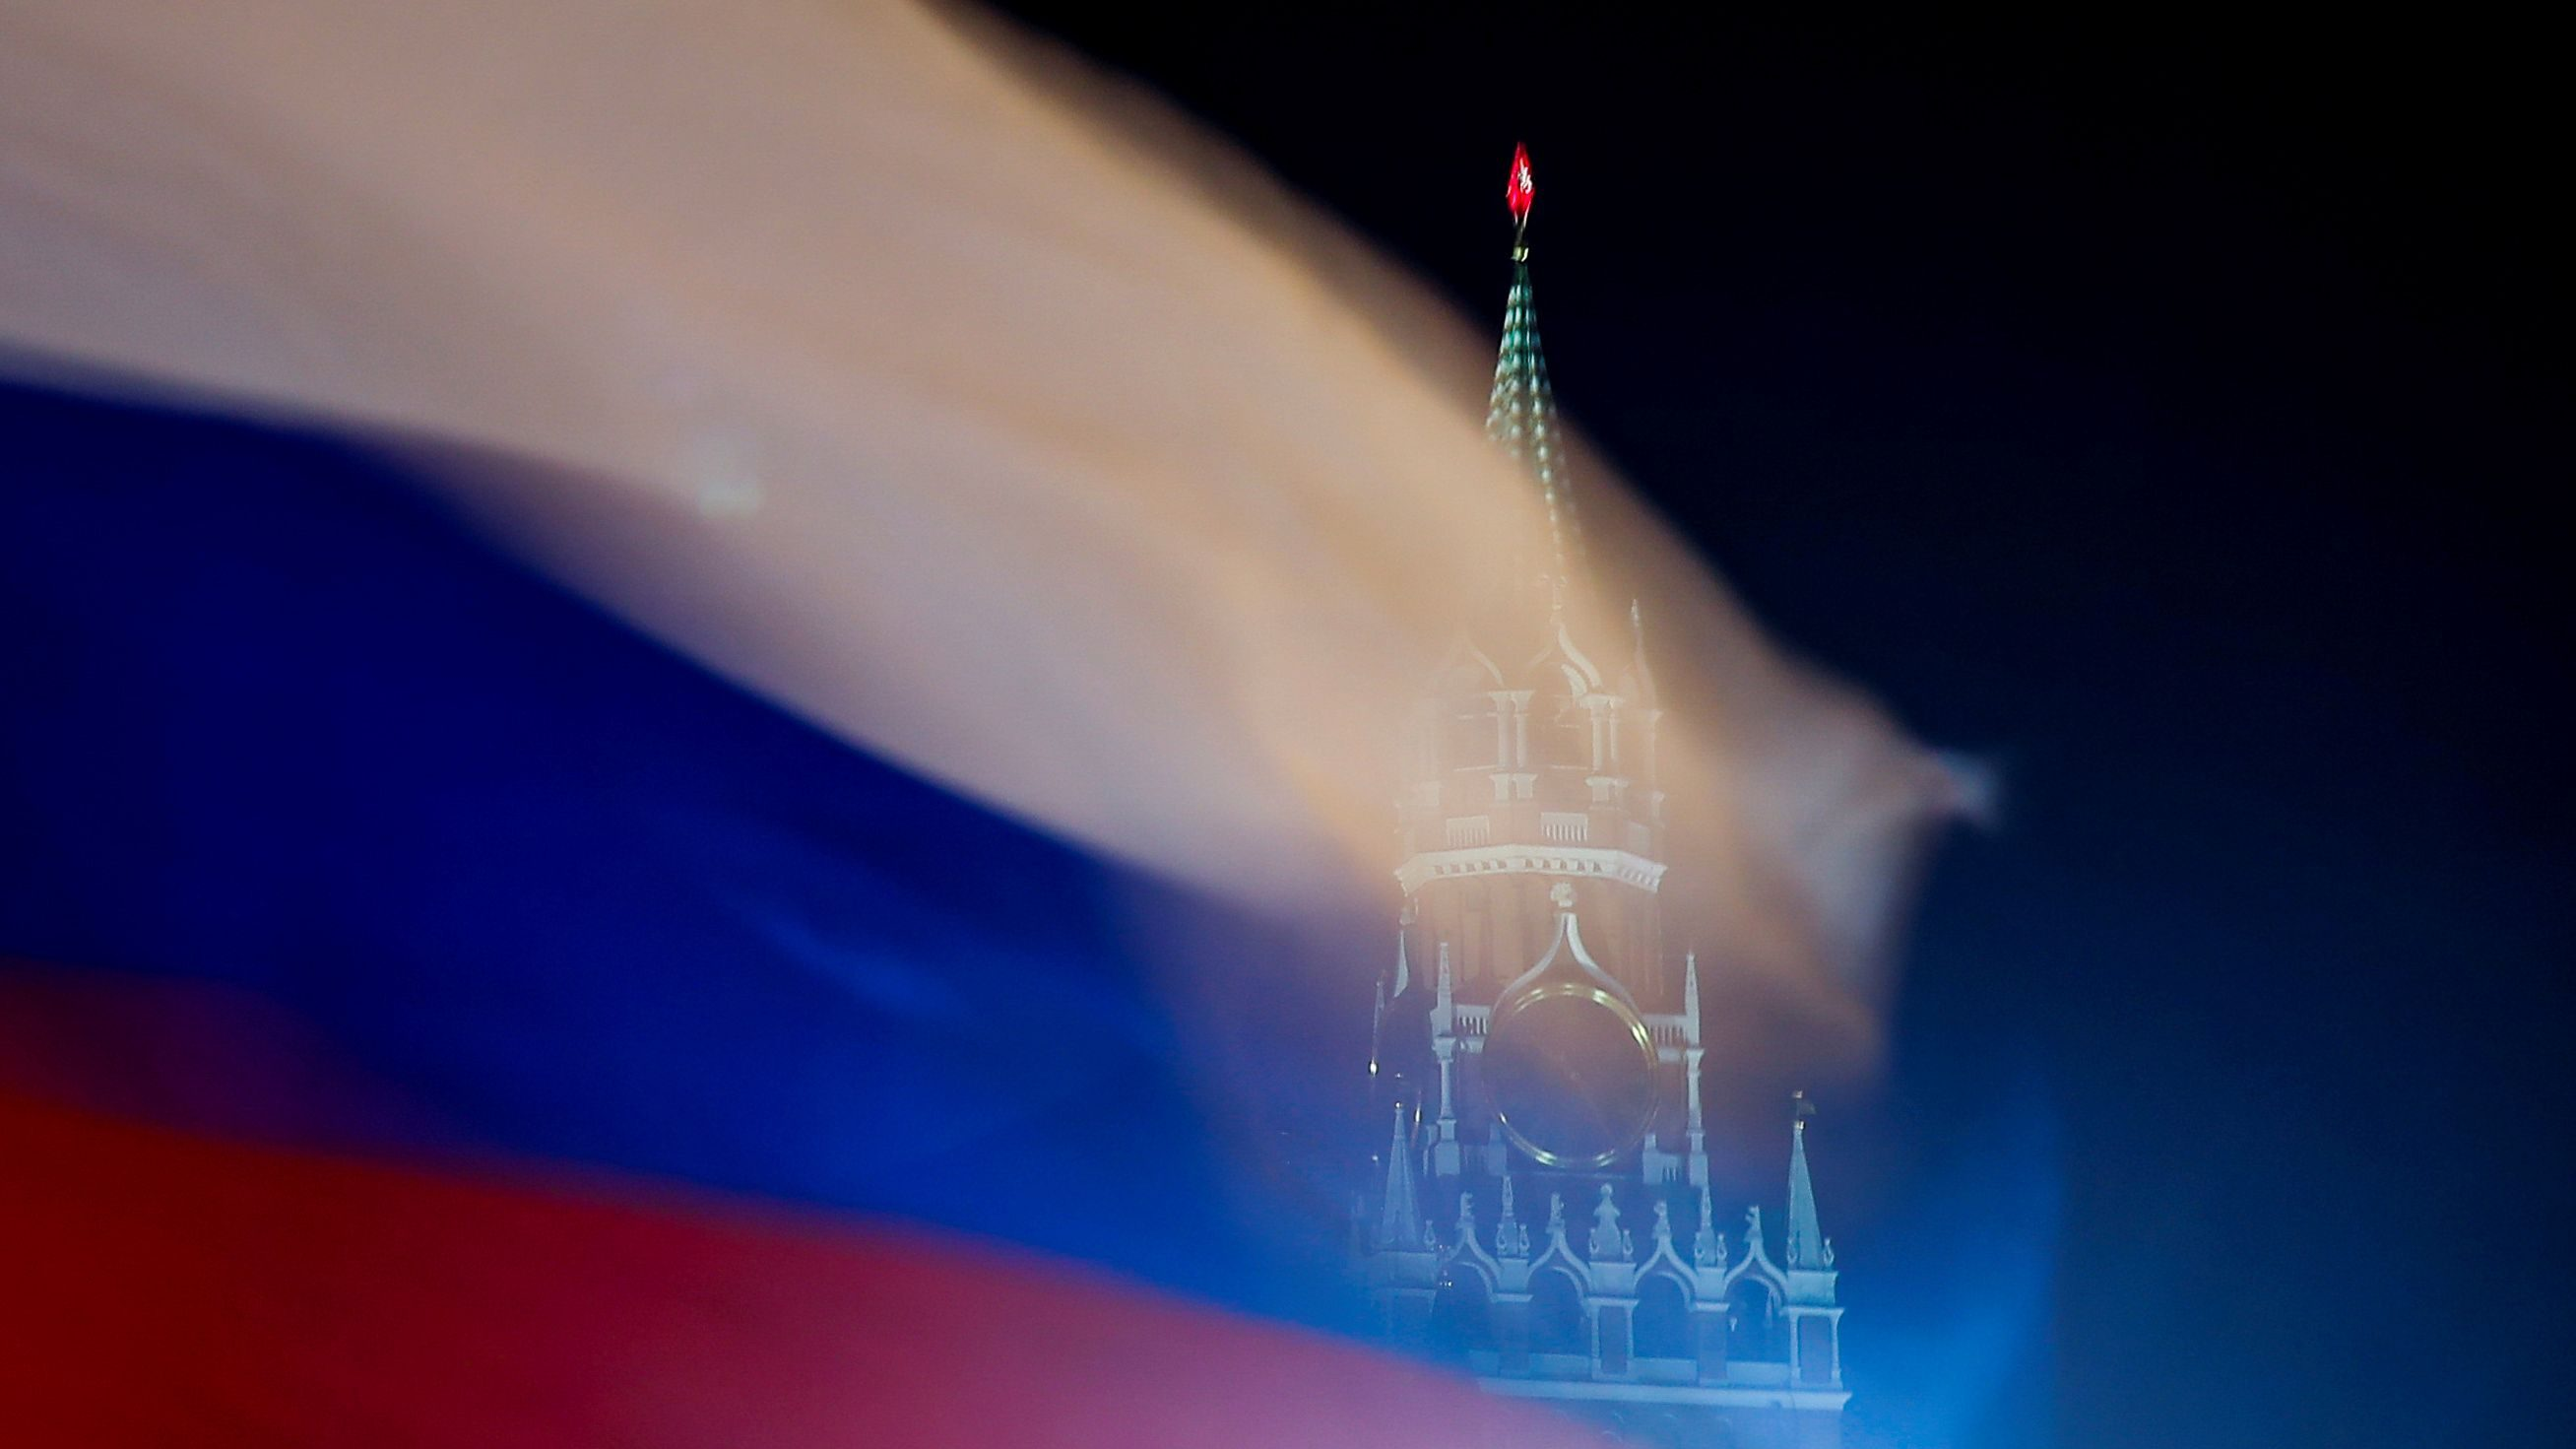 A Russian flag flies with the Spasskaya tower of Moscow's Kremlin in the background